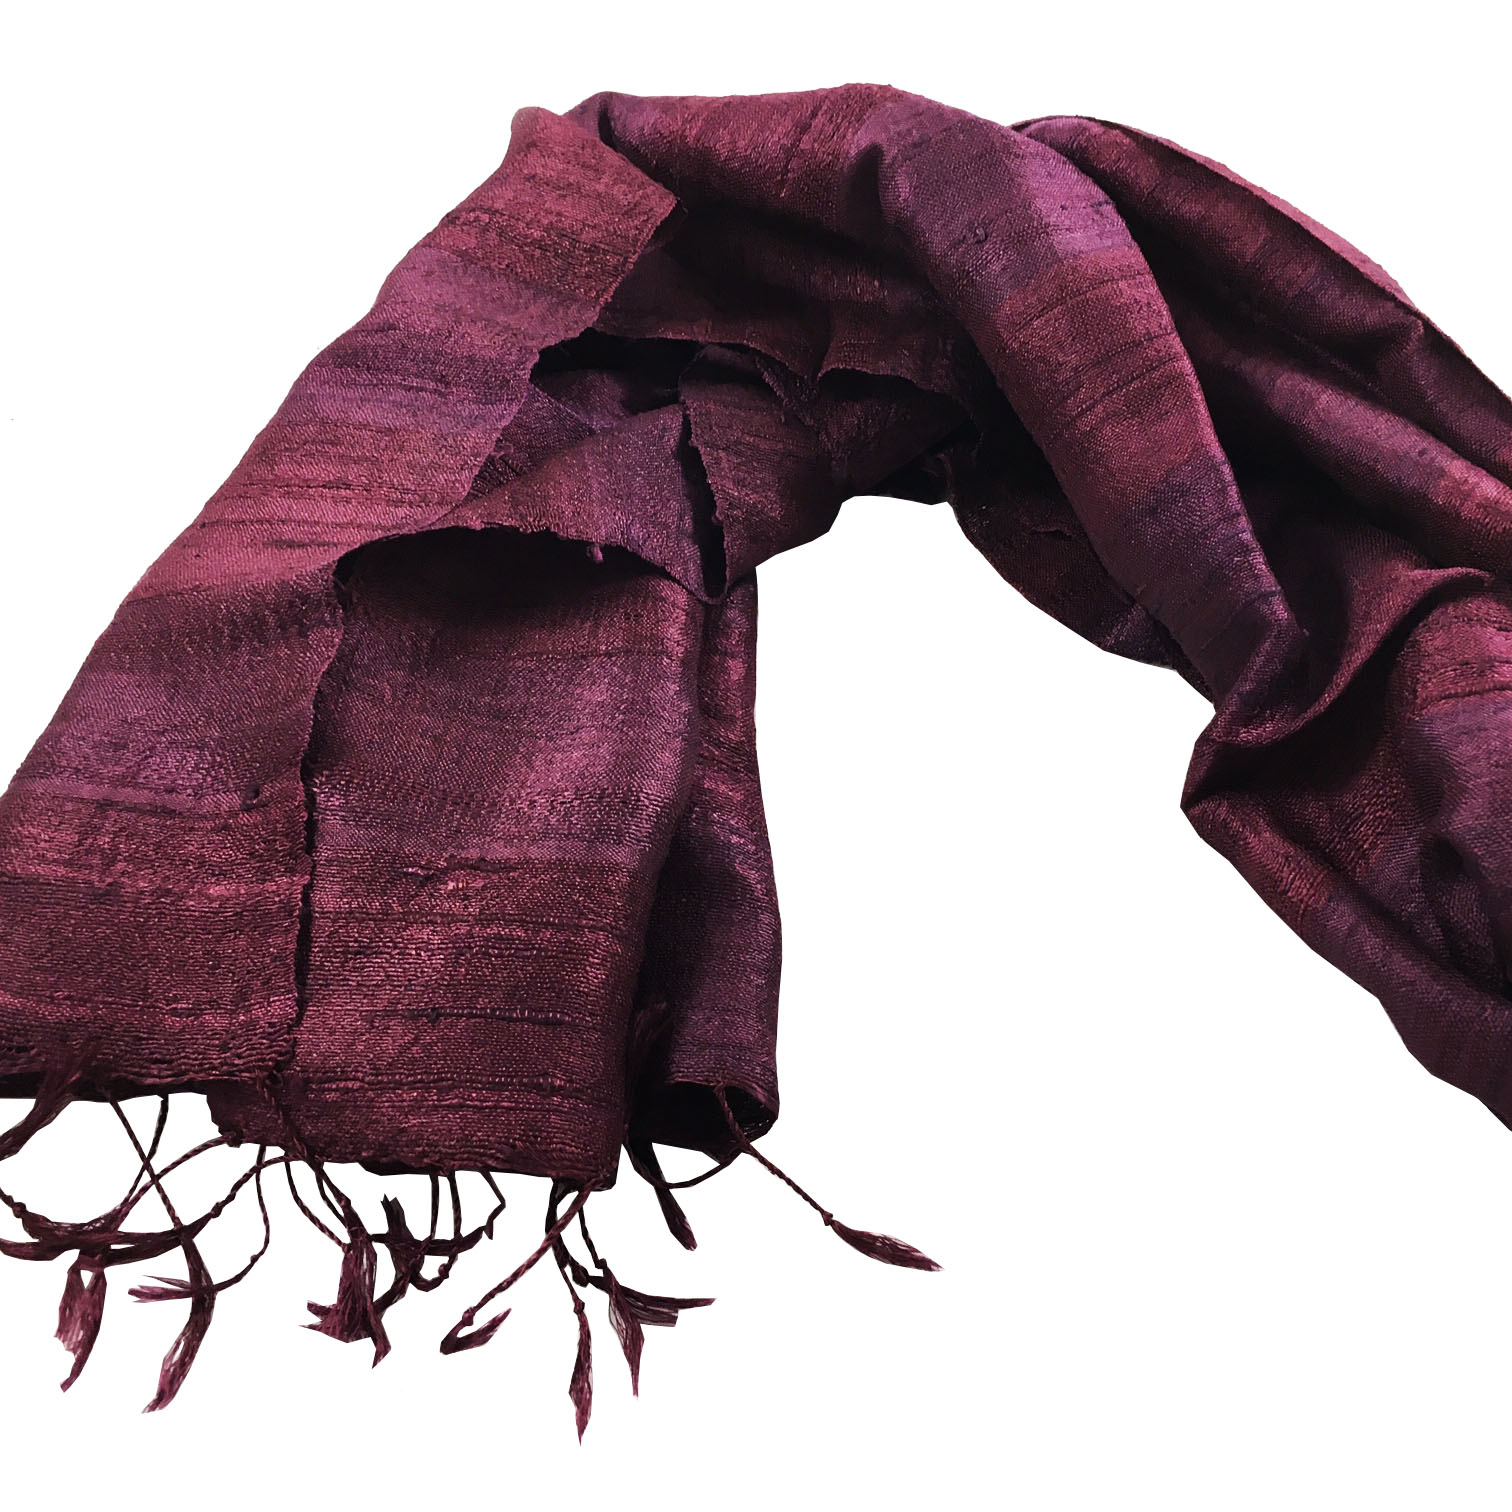 Maroon raw silk shawl from Thailand